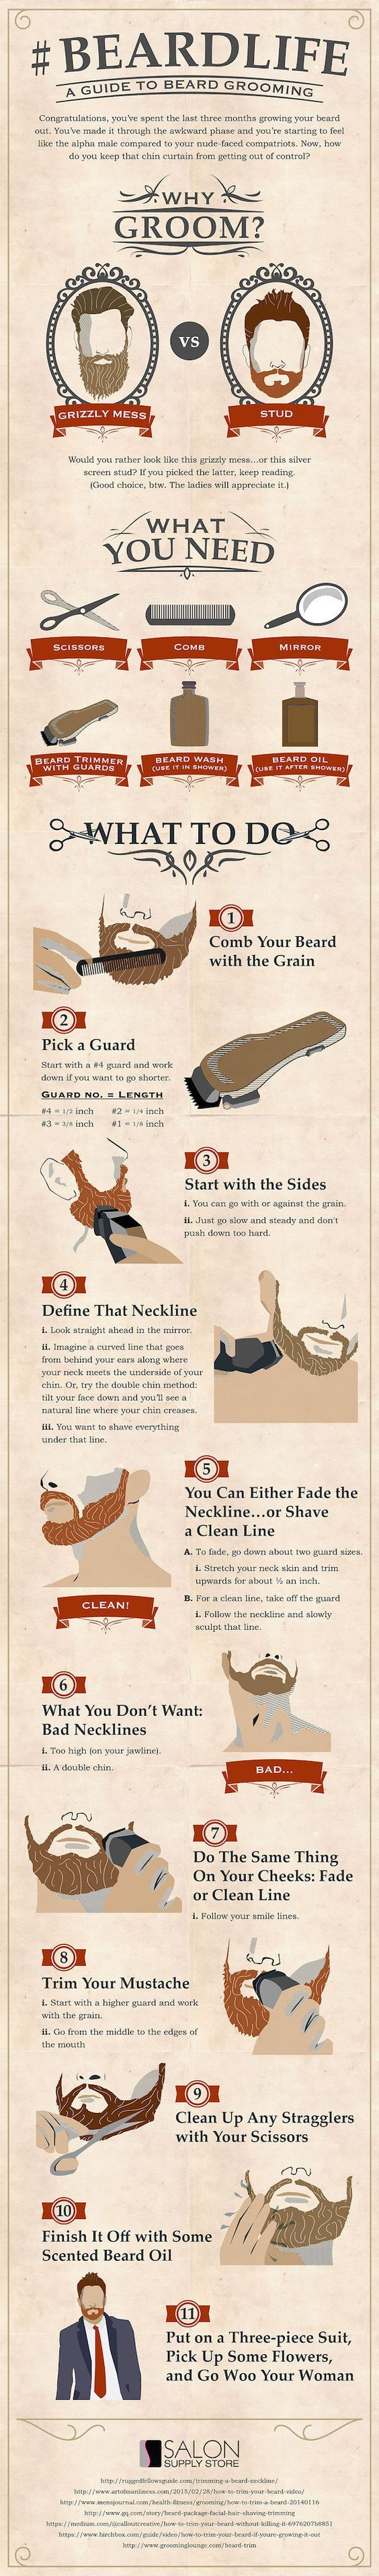 Infographic: A Handy Men's Guide To Keeping Your Beard Well-Groomed - DesignTAXI.com: